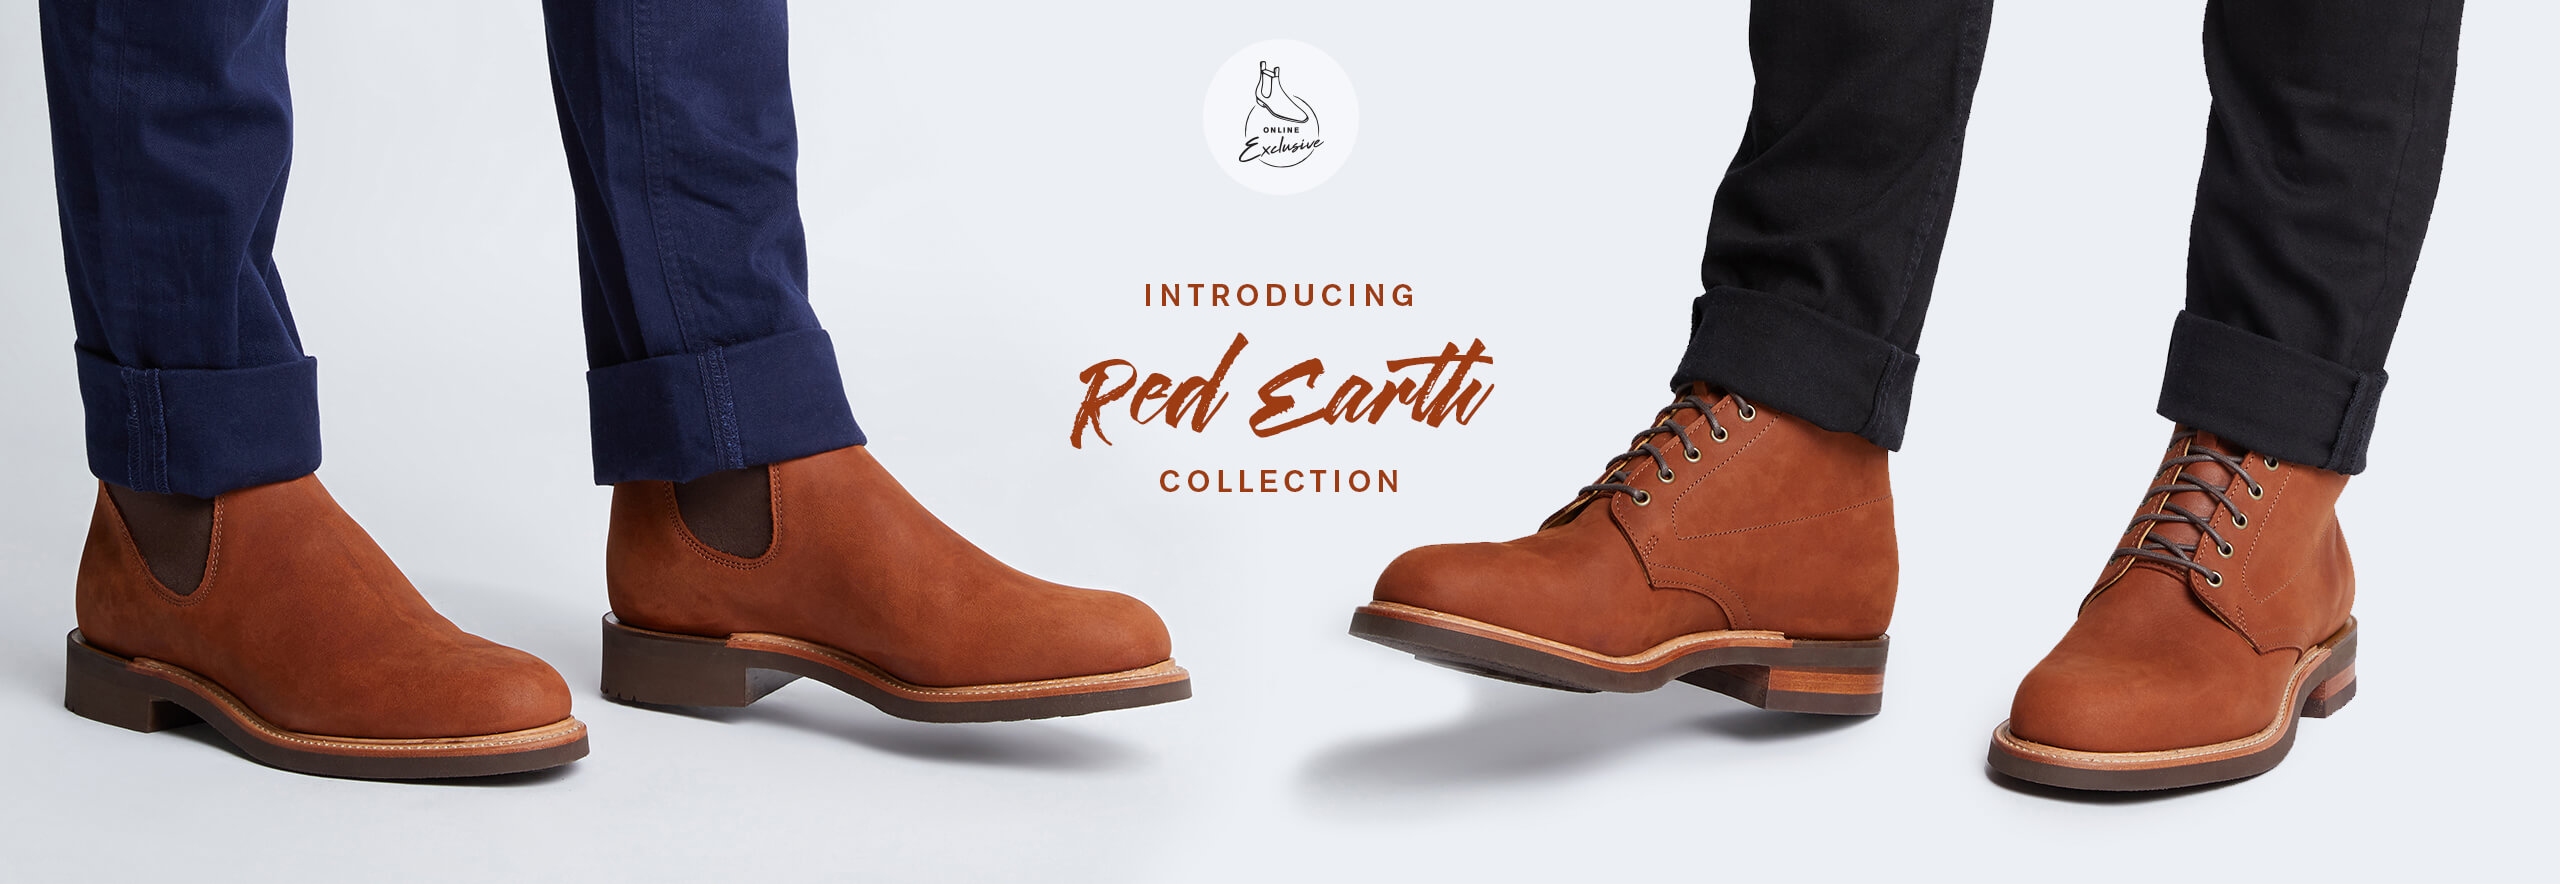 R.M.Williams Red Earth Collection